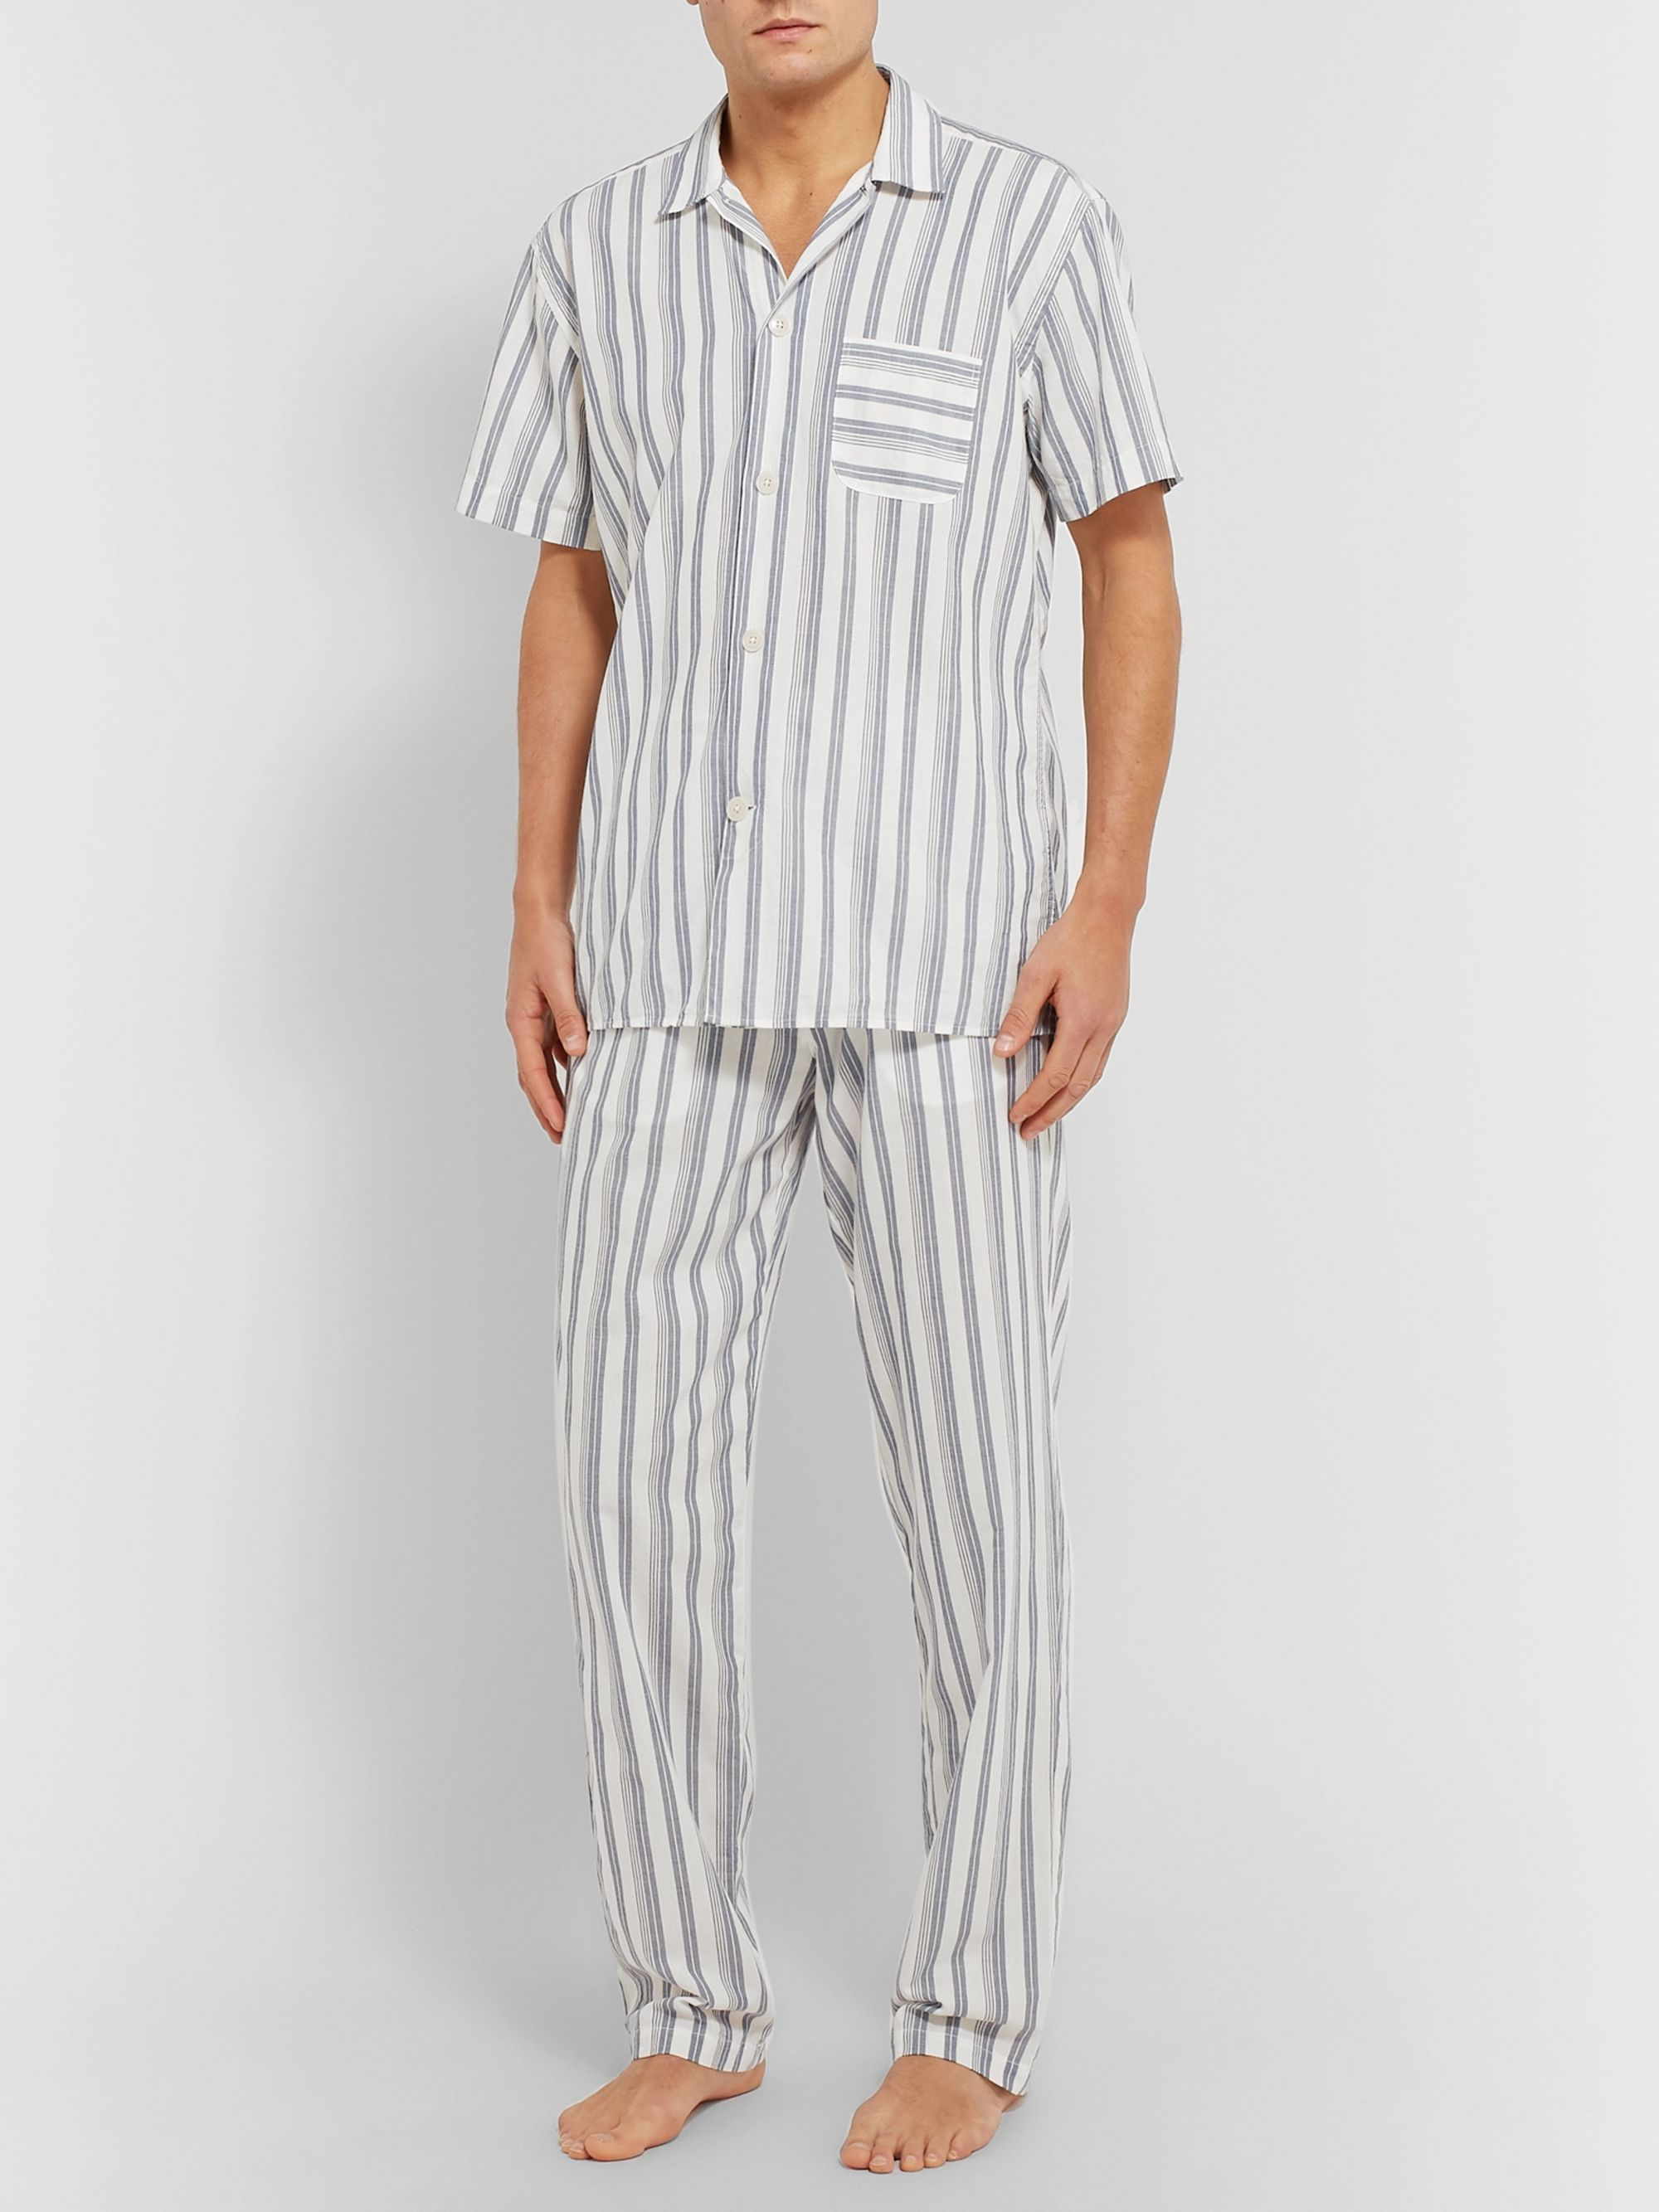 Oliver Spencer Loungewear Striped Organic Cotton Pyjama Trousers